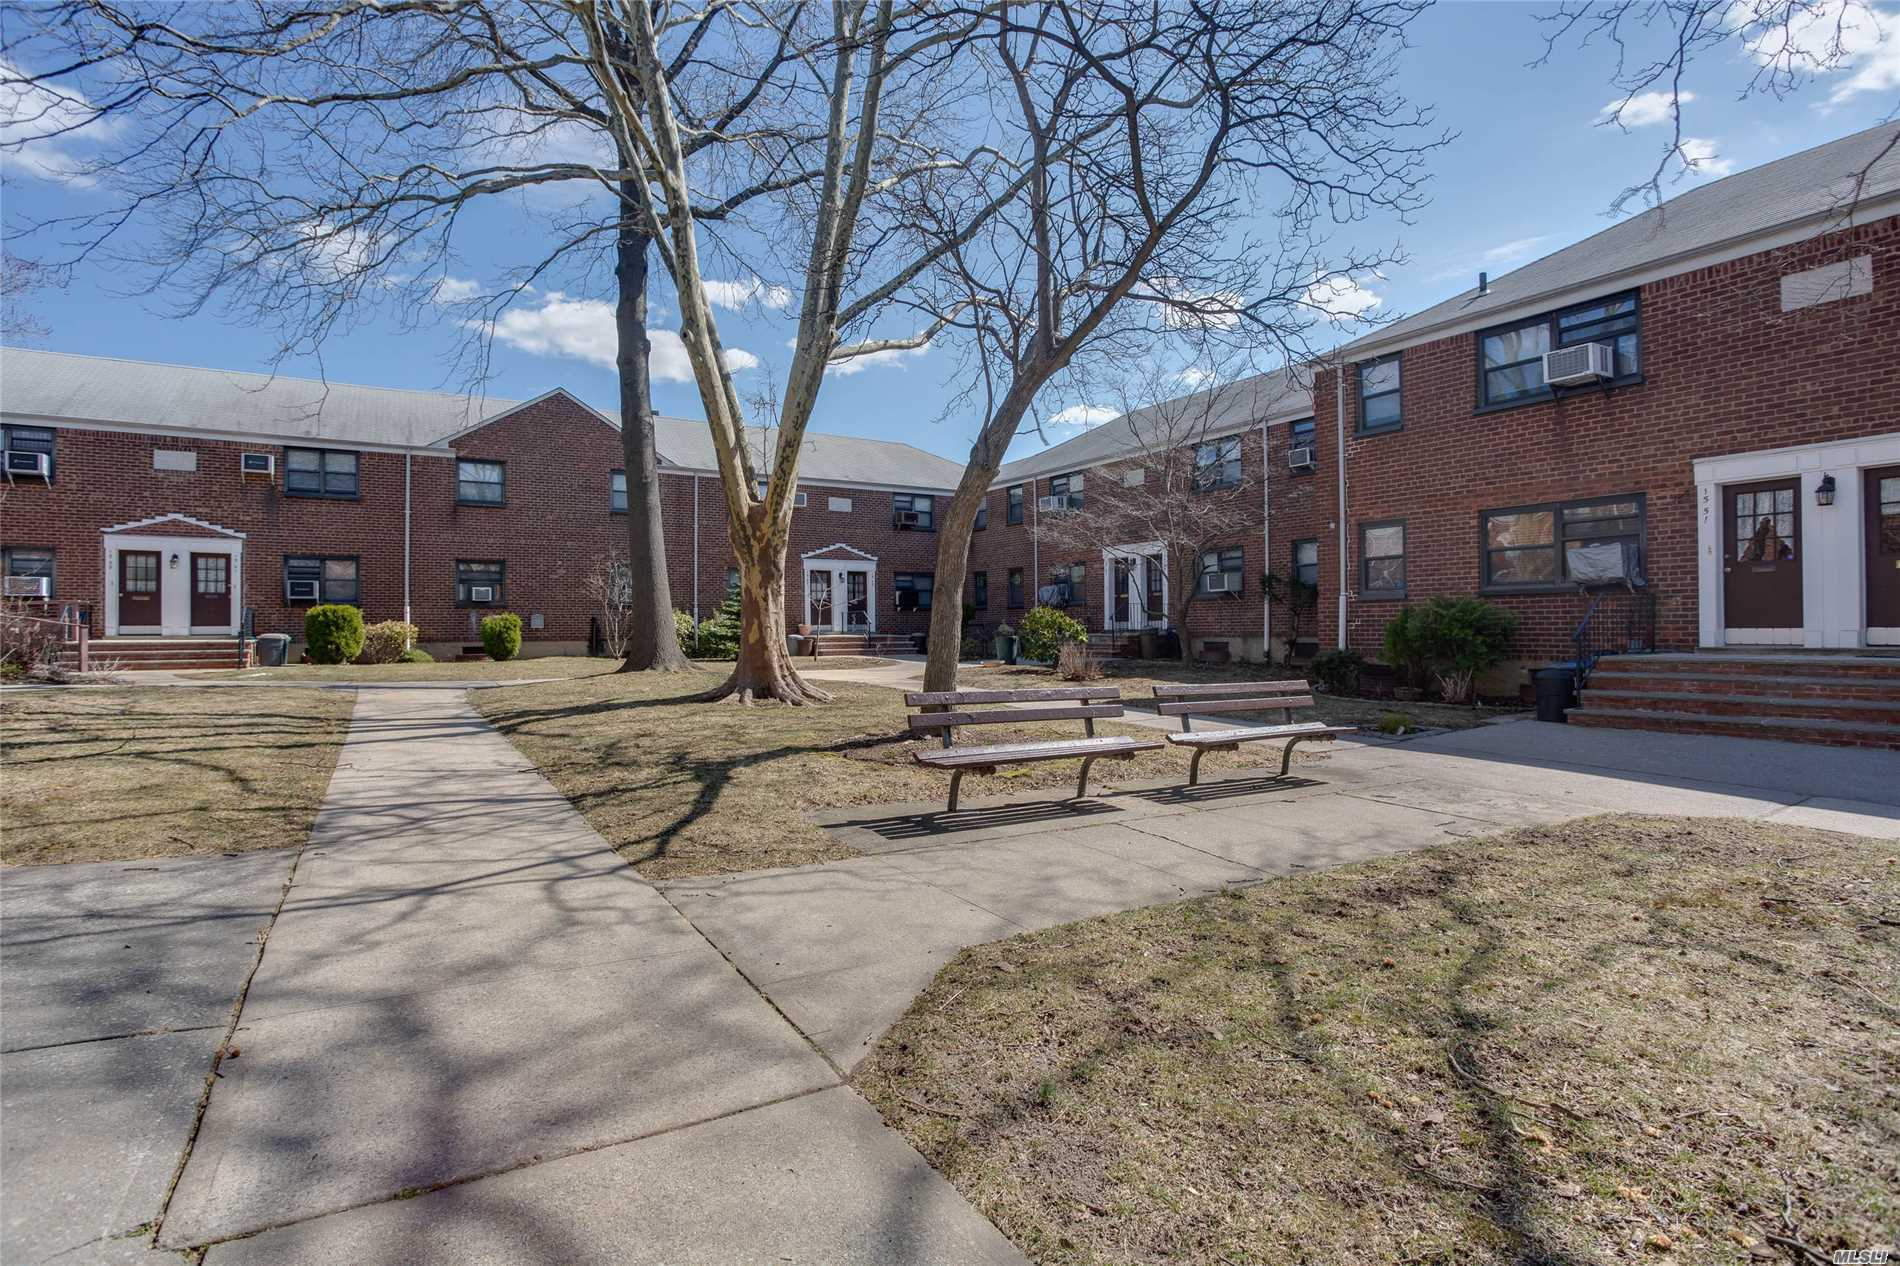 Sun filled Charming UPPER corner 1 bedroom in move in condition located in private courtyard. Gleaming hardwood floors throughout, Beautiful woodwork, hi-hats and more. Spacious walk-up attic, . Close to express bus to the city, Flushing. Easy access to highway!~near shopping. Move right in and enjoy the convenience and location of Clearview Gardens.